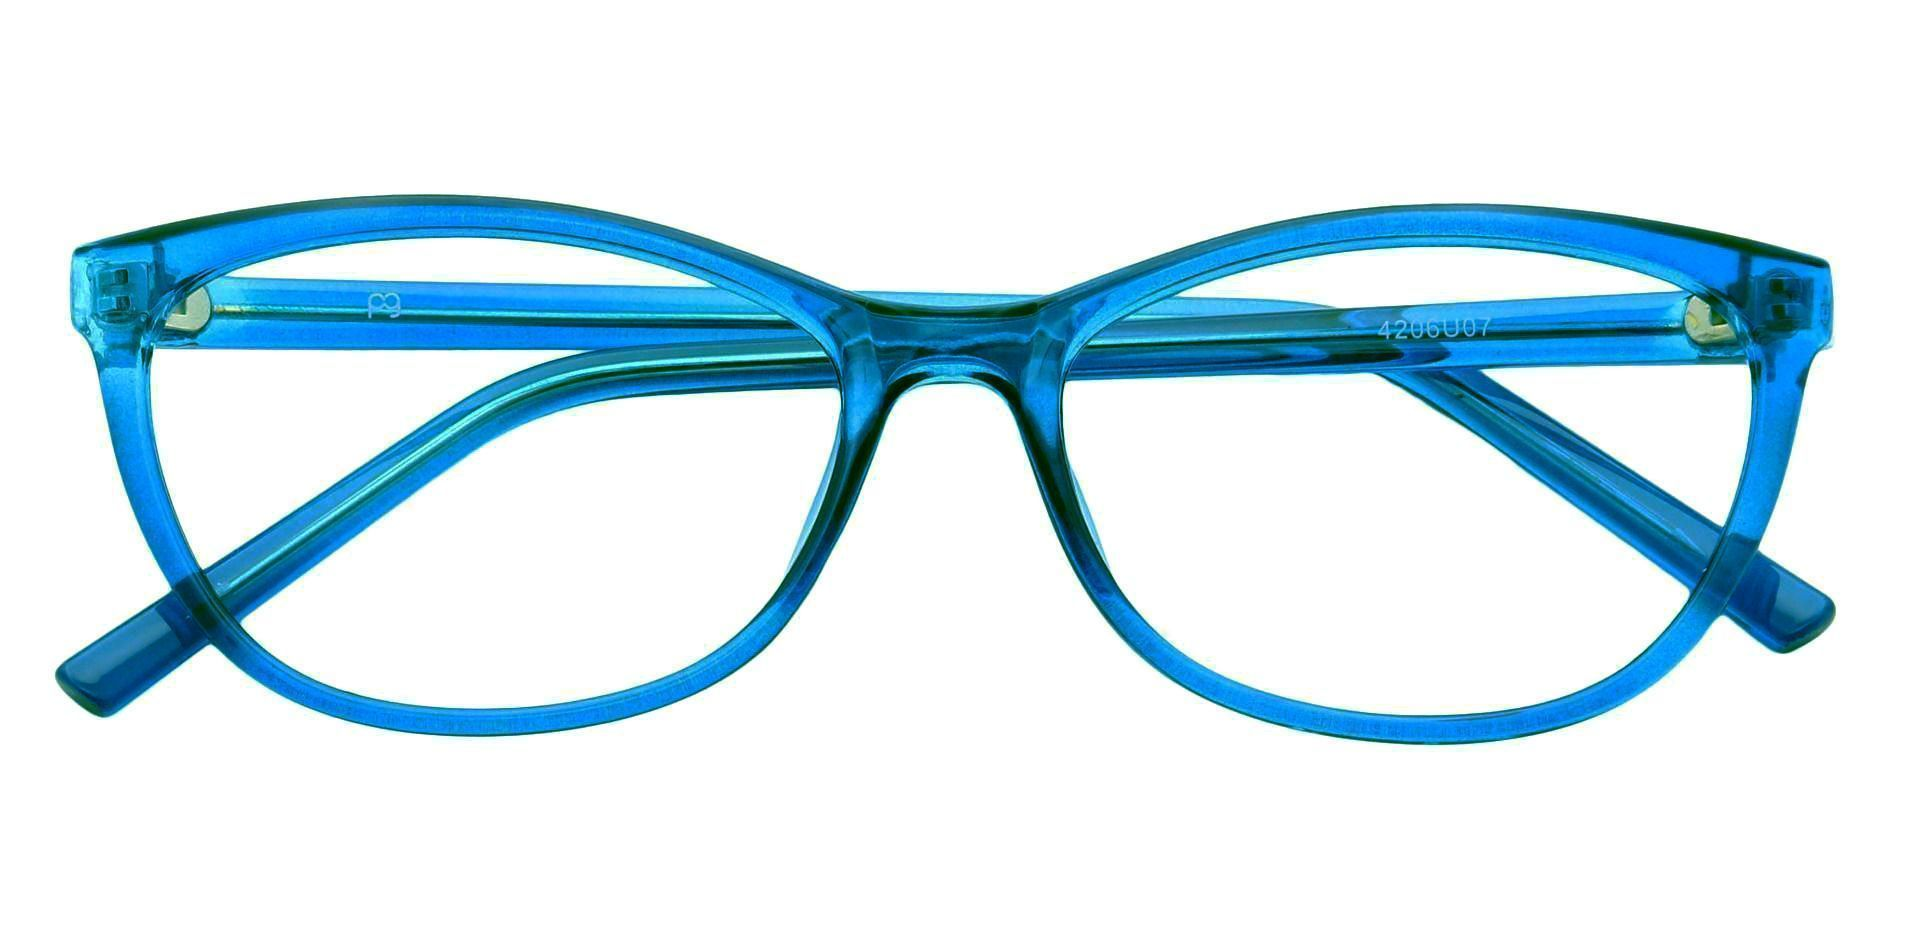 Sally Oval Progressive Glasses - Blue